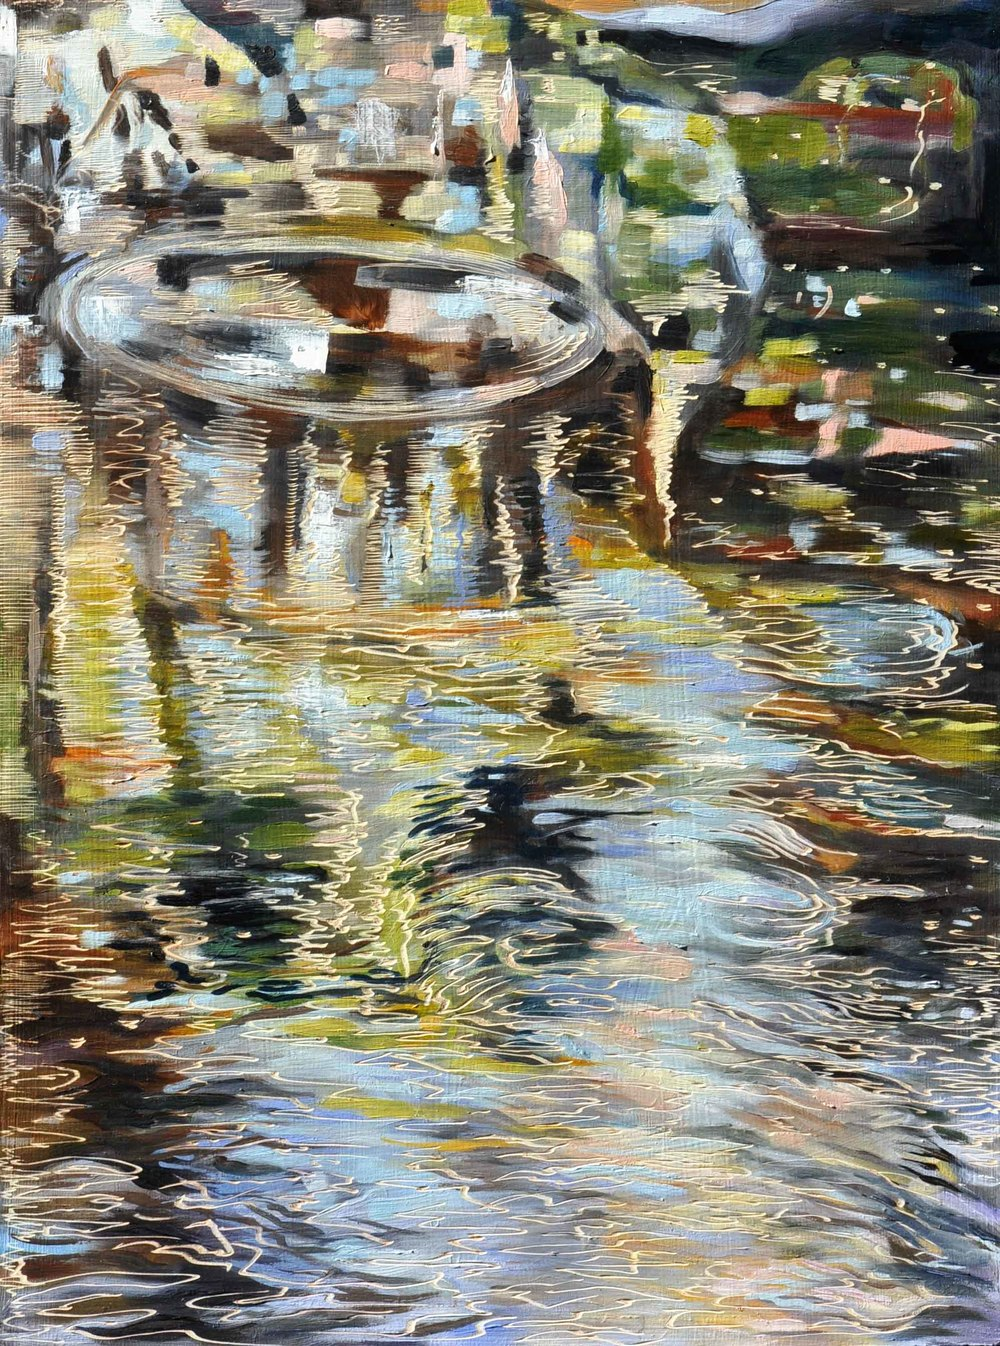 Title: Water Dancing - America Bay Creek